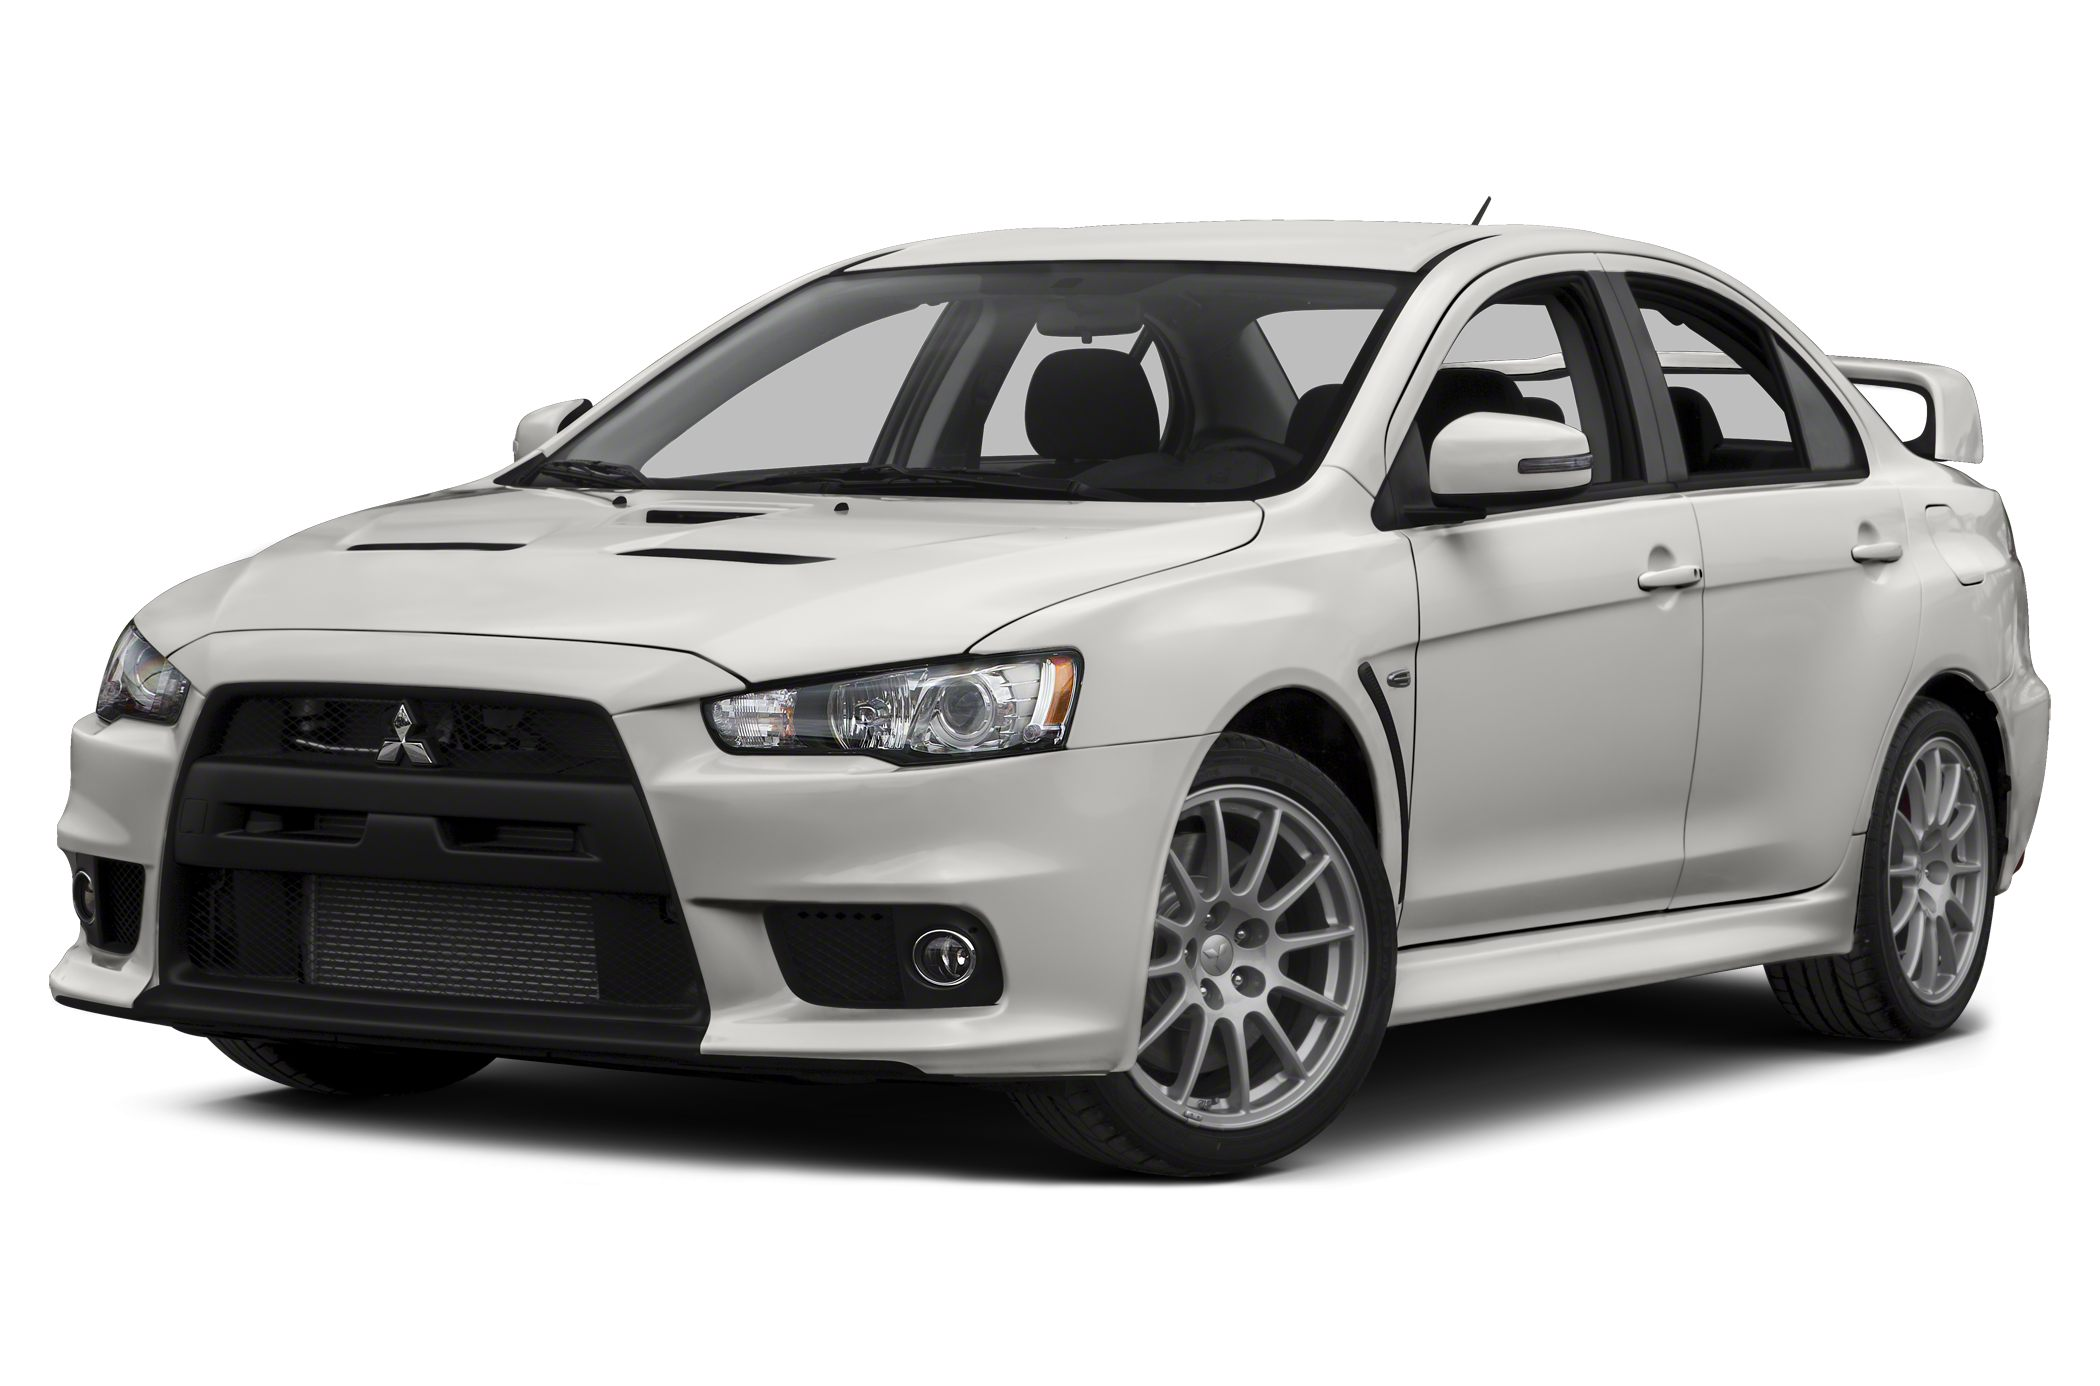 Mitsubishi Lancer Evolution Prices Reviews And New Model